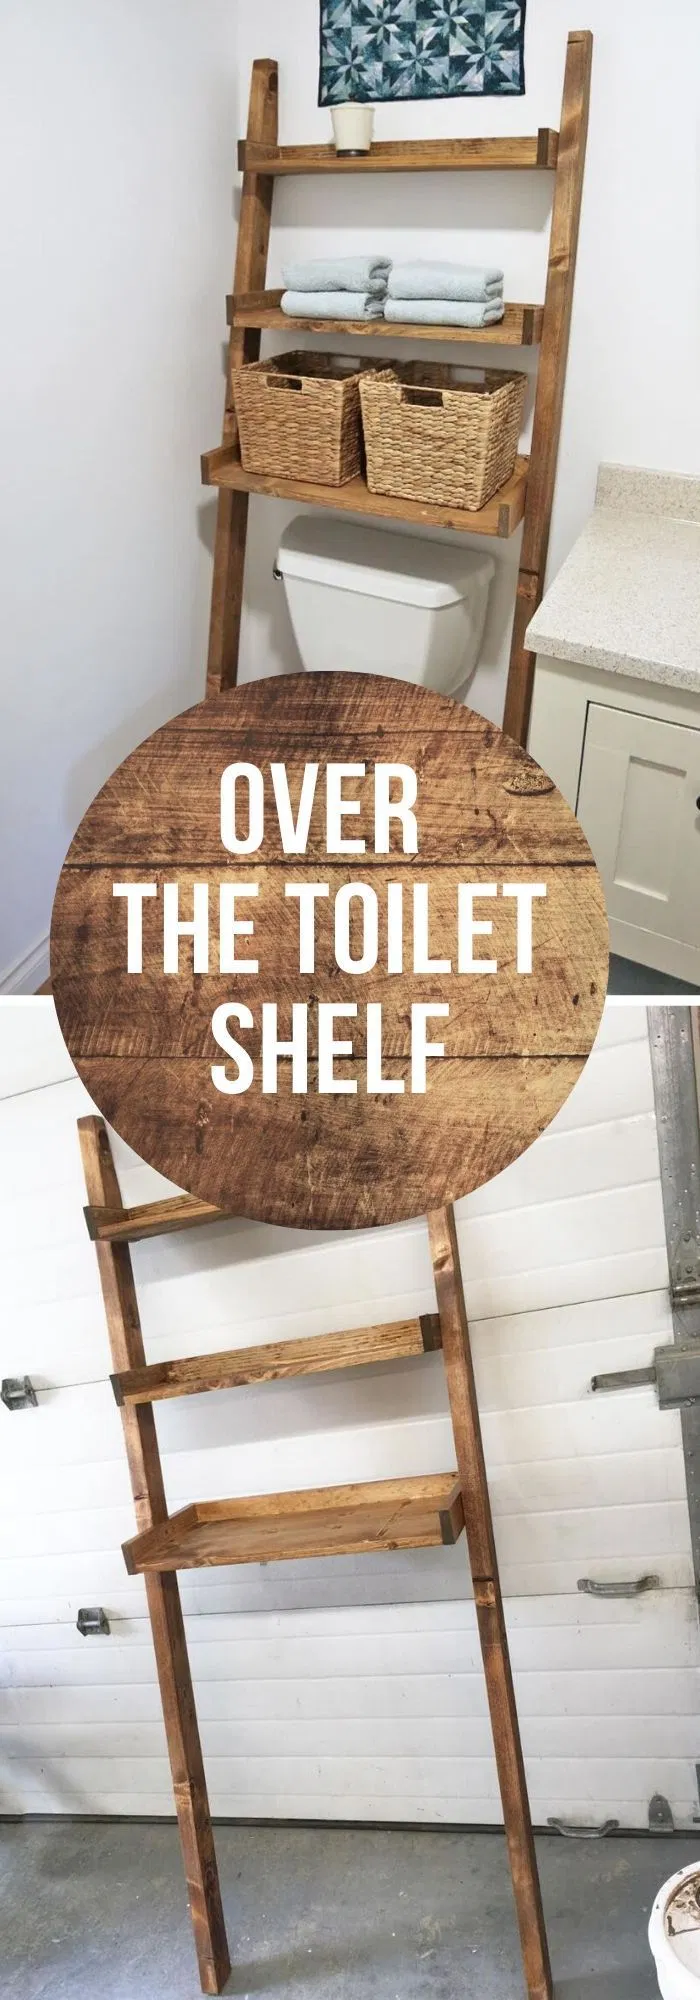 27+ Stunning DIY Bathroom Pallet Projects & Ideas For 2019 #furnitureredos